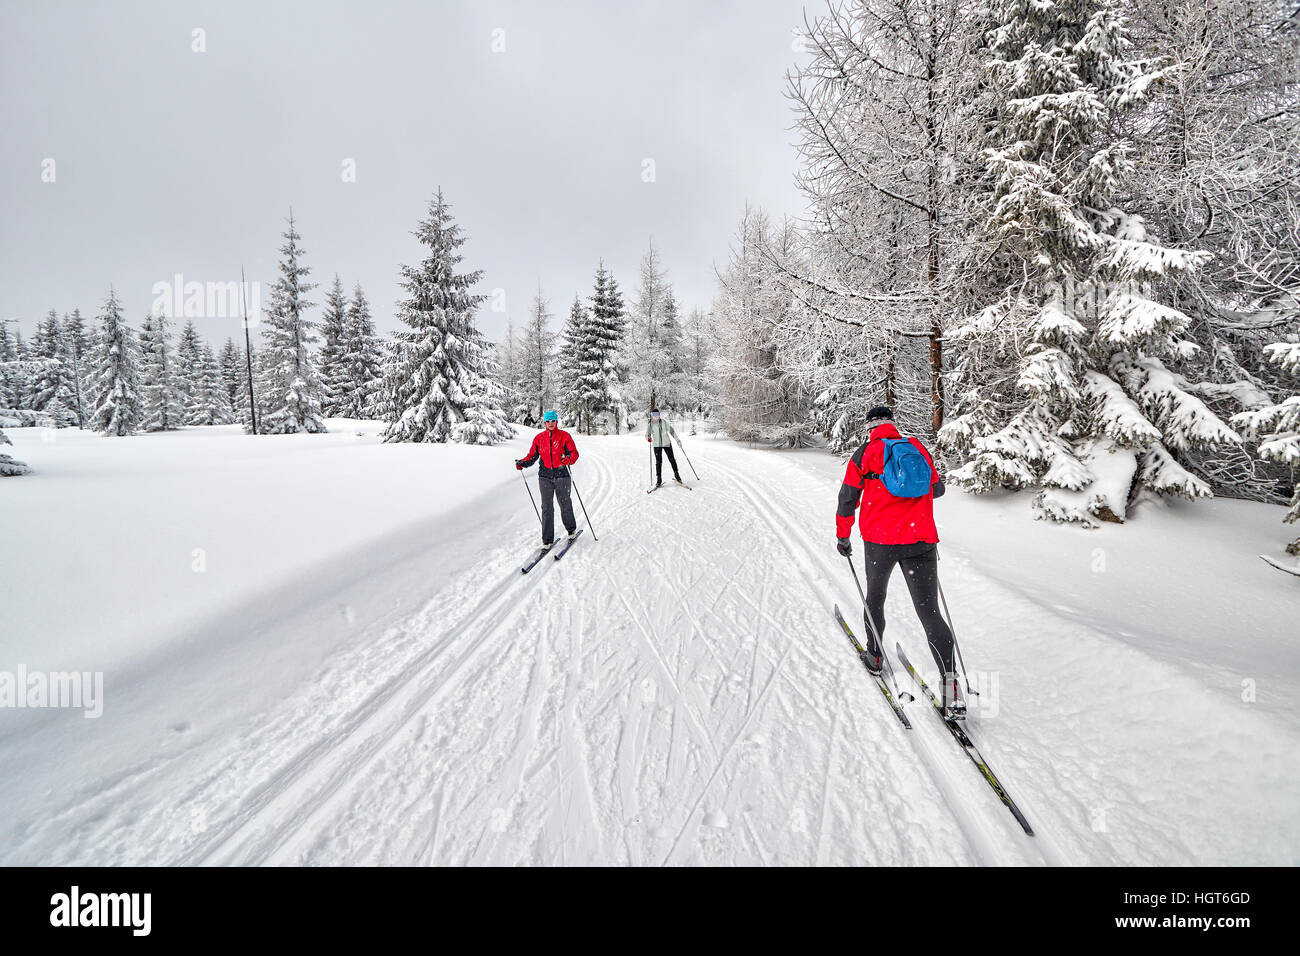 Jakuszyce, Poland - January 06, 2017: Cross-country skiers running on prepared tracks in snow on a cloudy day. - Stock Image